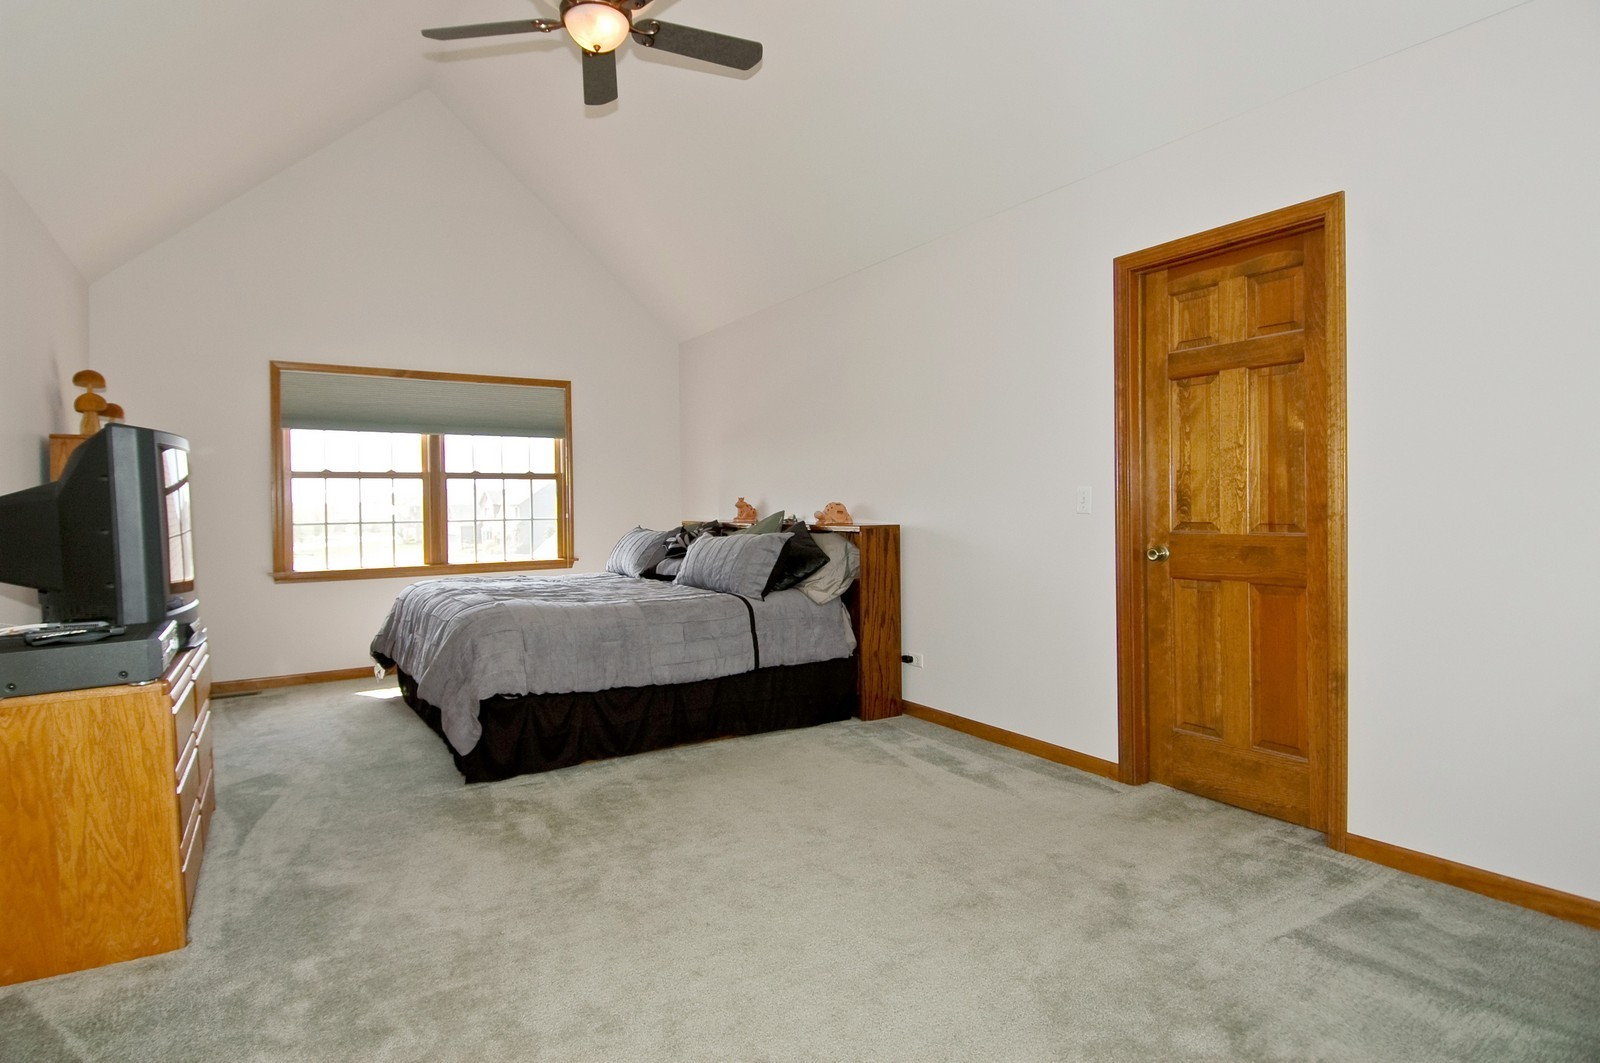 Real Estate Photography - 491 Clover, Algonquin, IL, 60102 - Master Bedroom